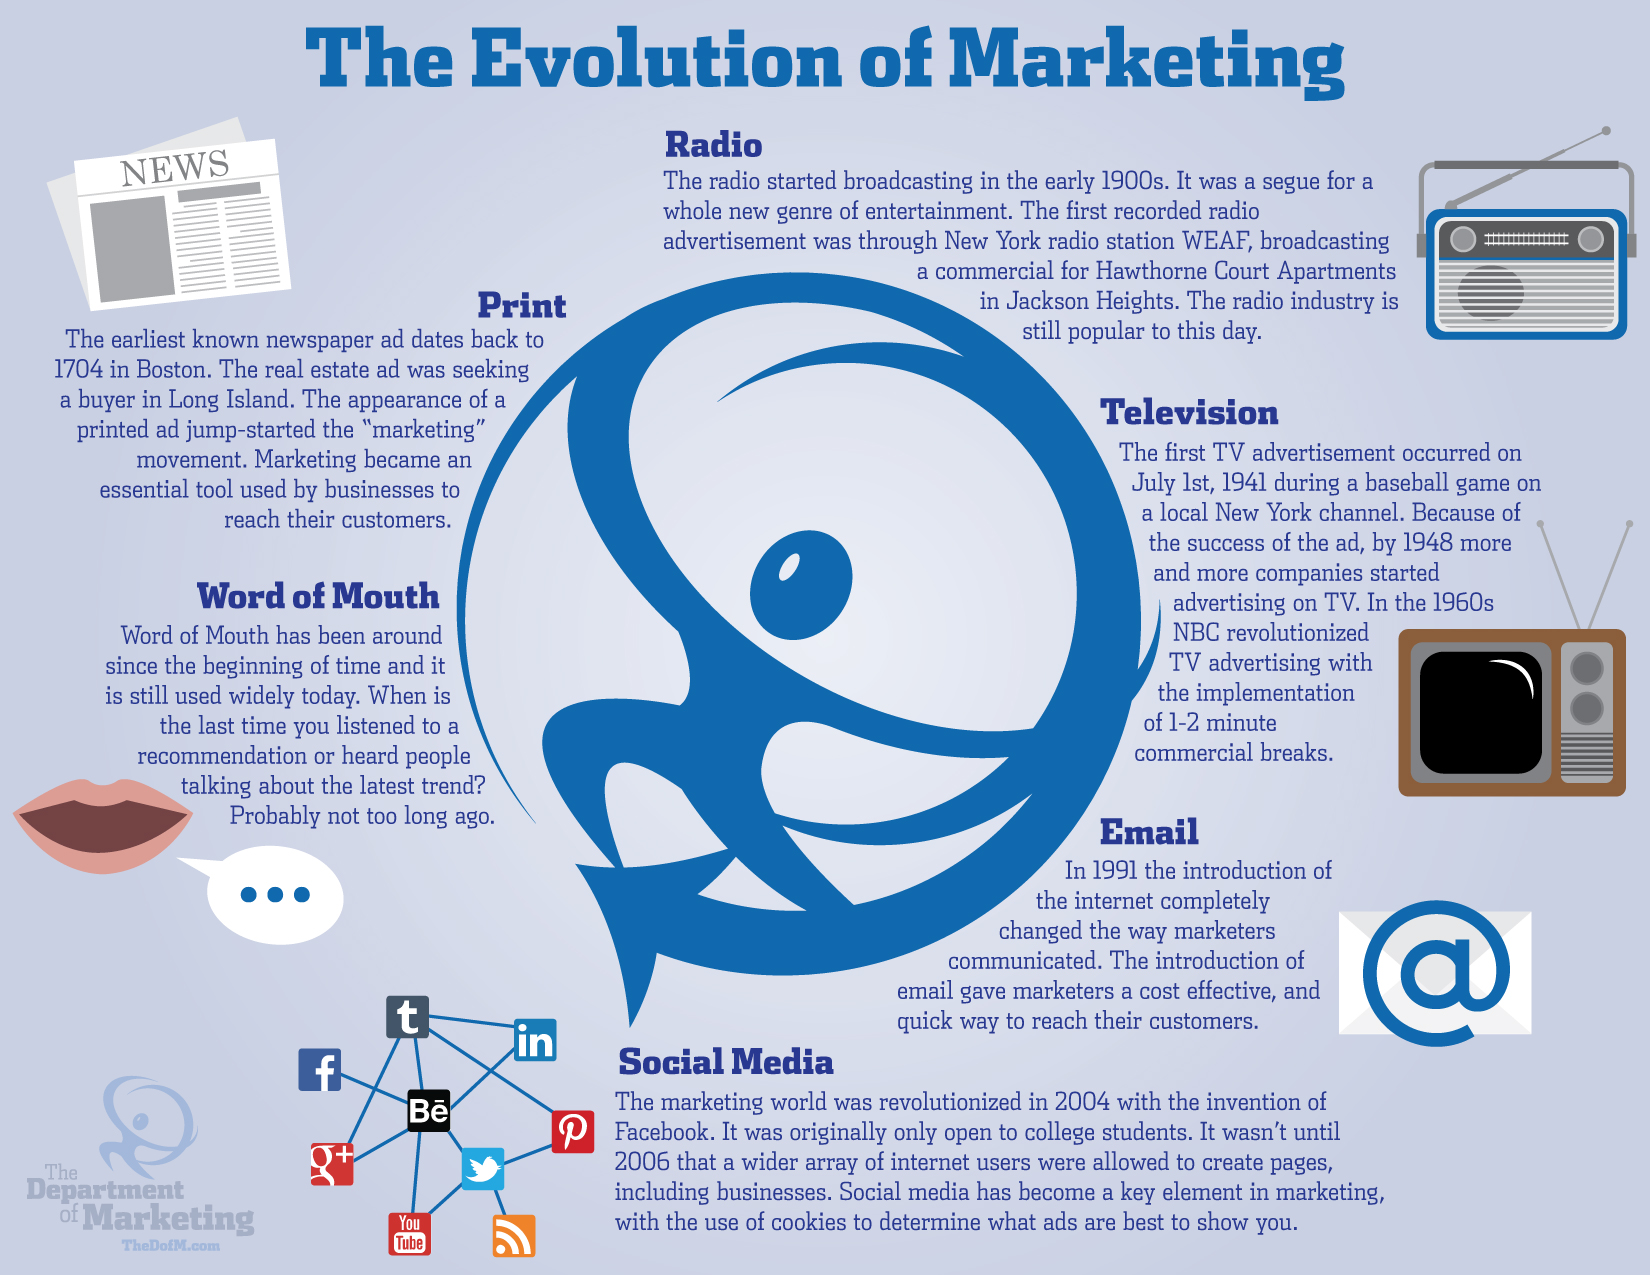 discuss the evolution of marketing The evolution of marketing into the most important business function within many business firms was first recognized by robert keith, an executive at pillsbury, in 1960, and was substantiated by other business leaders at other firms.